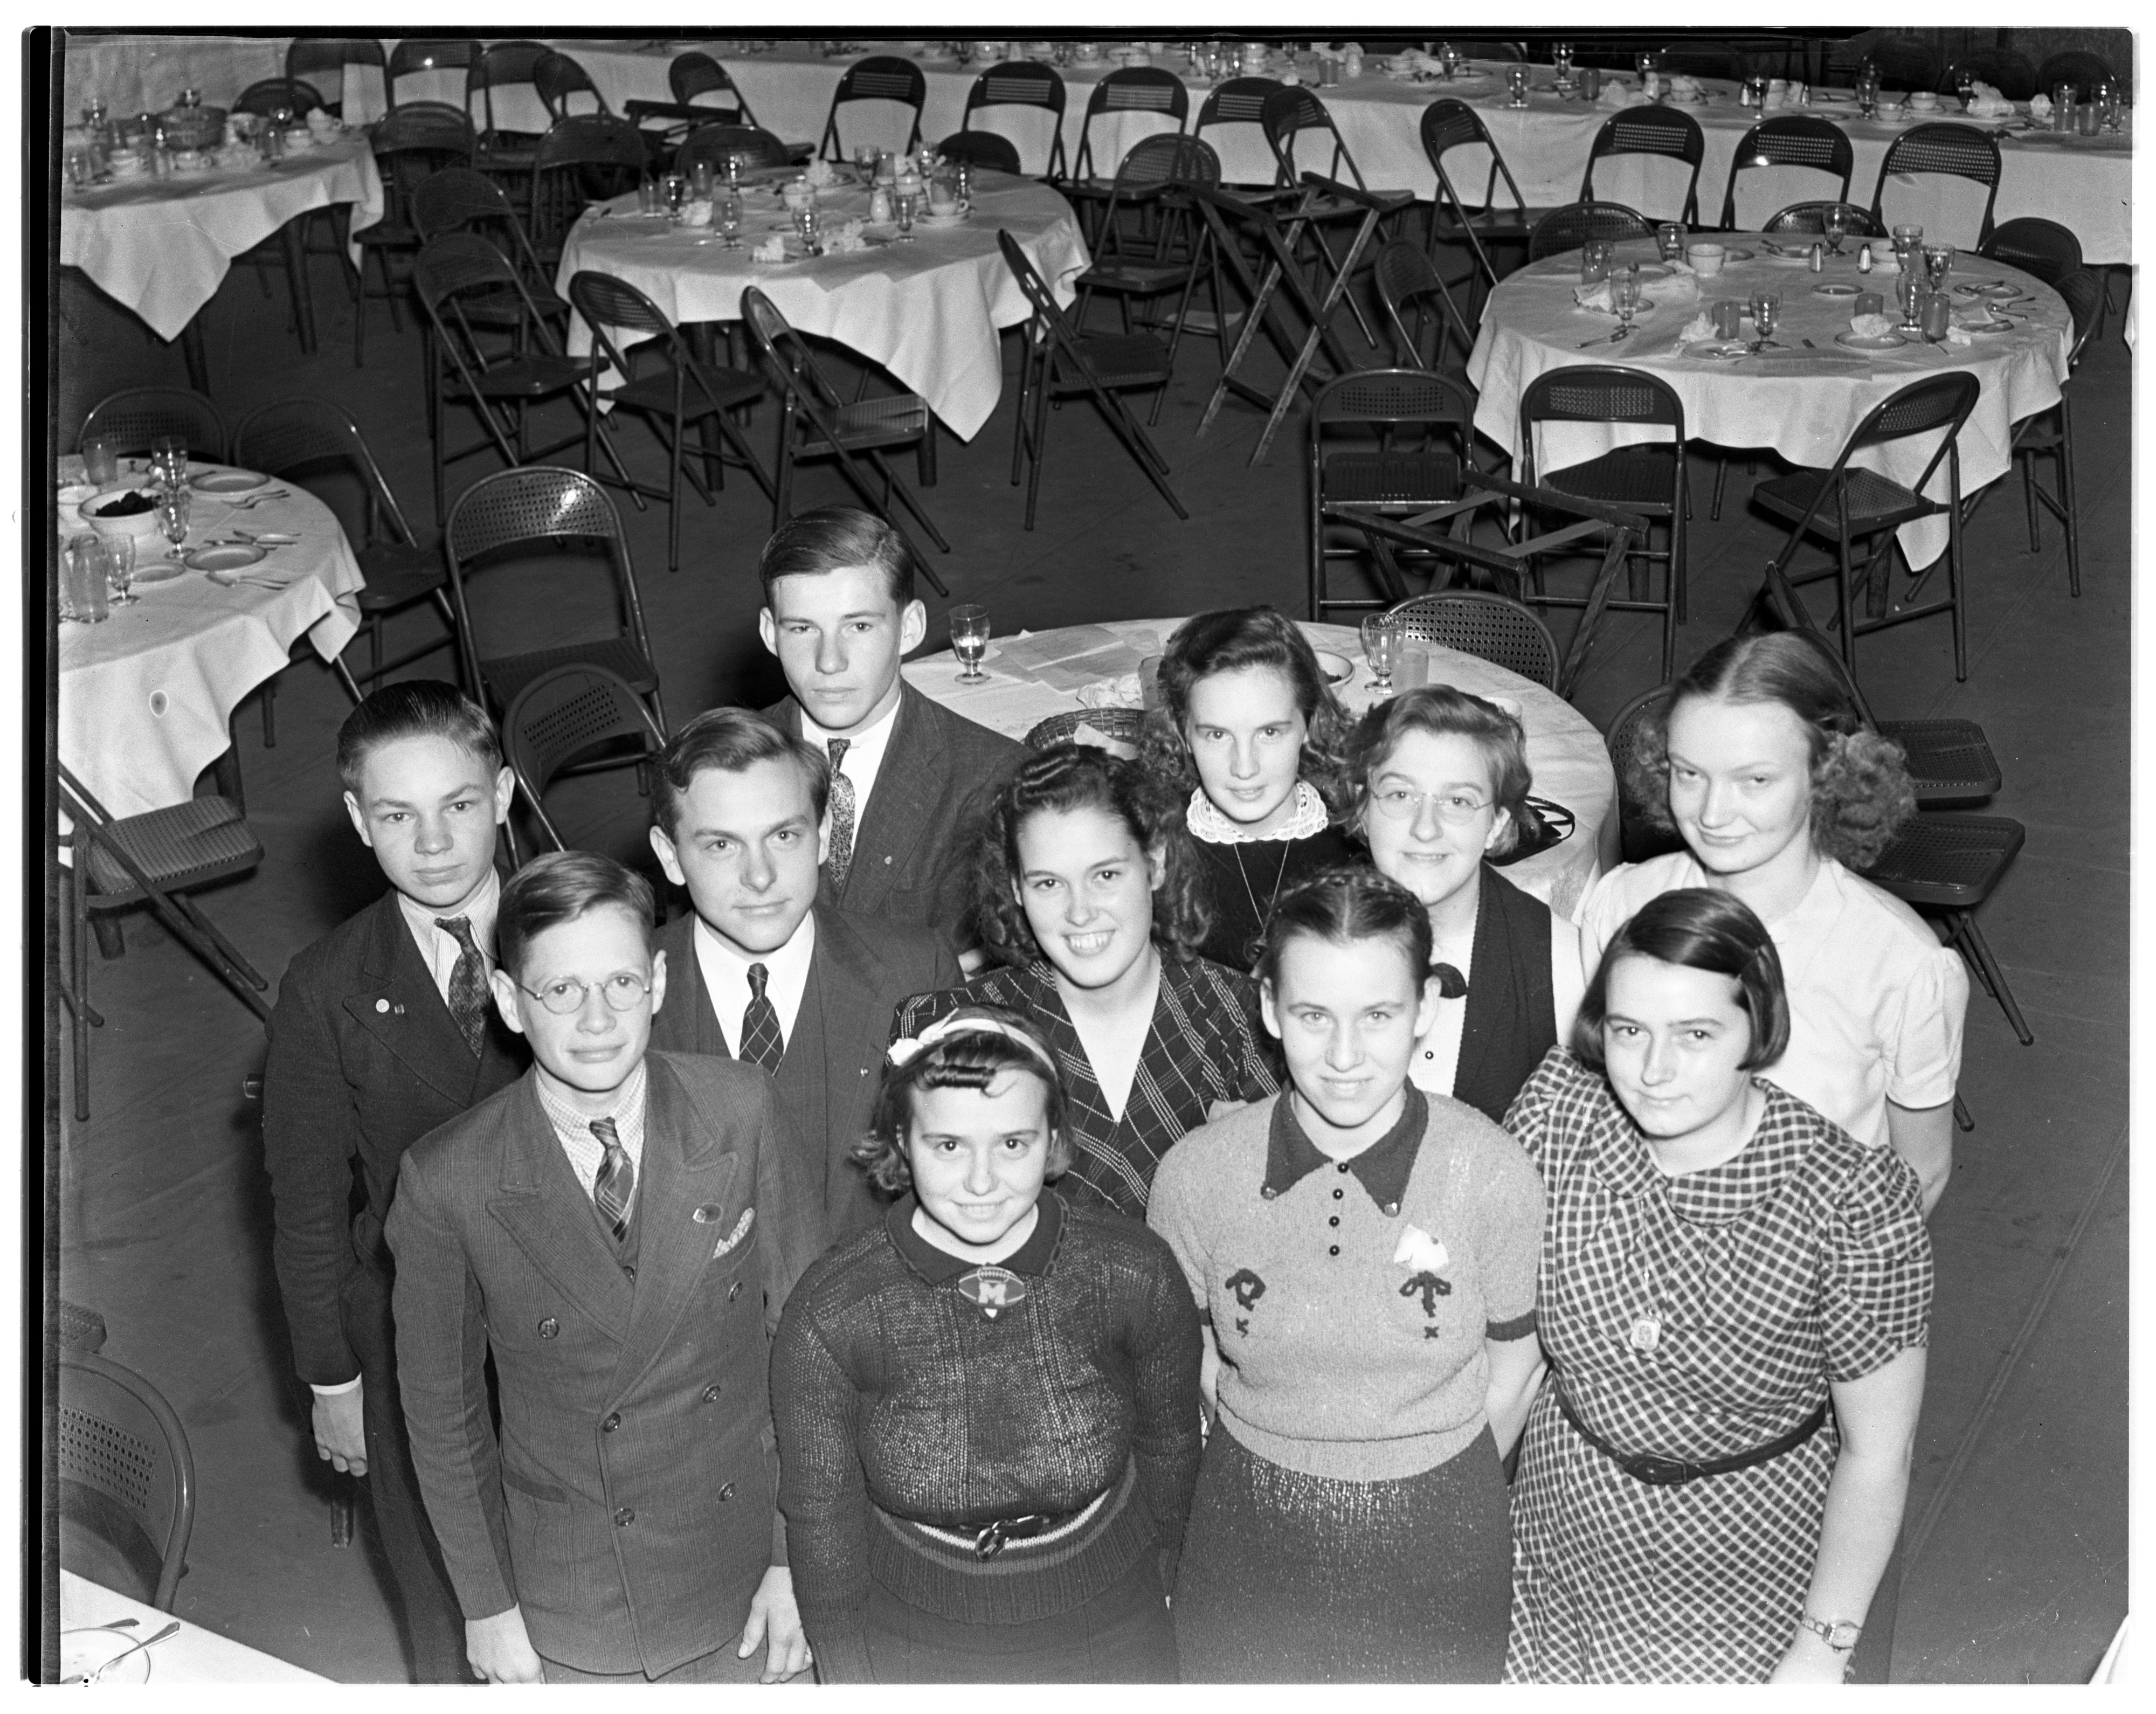 4-H Achievement Dinner At The Michigan Union, October 1938 image